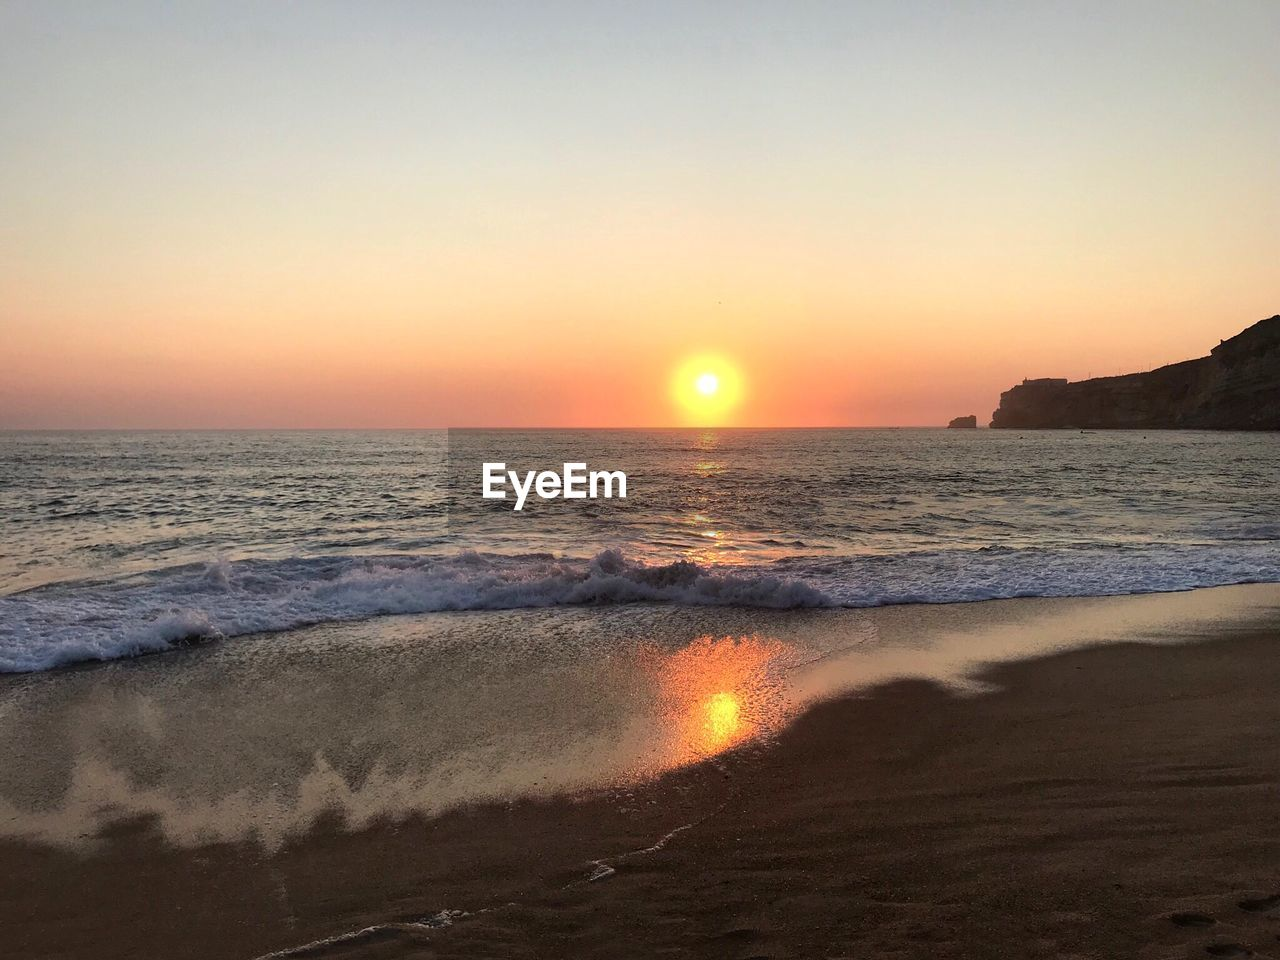 sky, sunset, sea, water, scenics - nature, beauty in nature, beach, land, sun, horizon over water, horizon, wave, tranquility, tranquil scene, orange color, idyllic, motion, no people, nature, outdoors